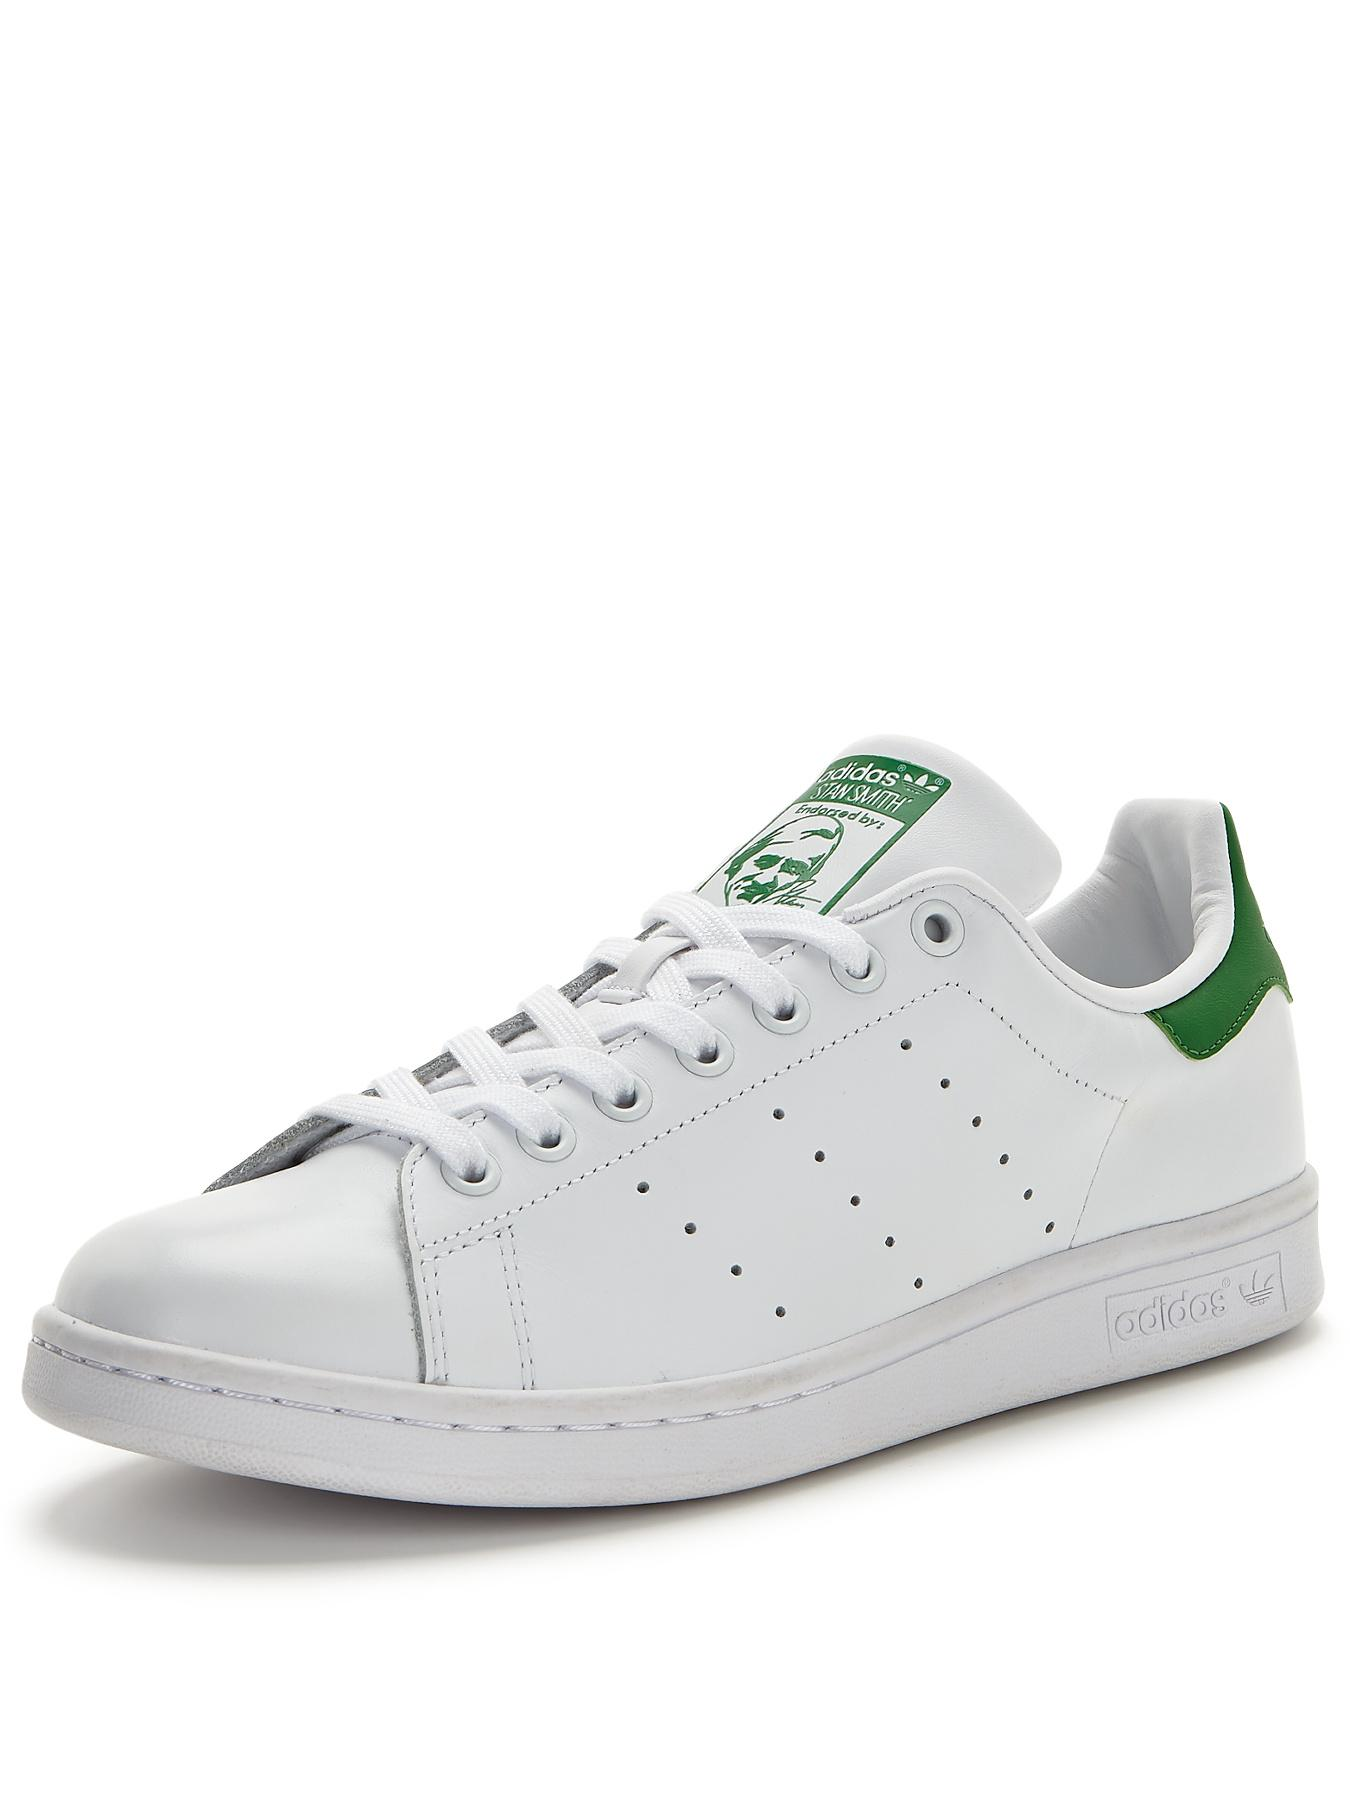 adidas stan smith 2 womens cheap